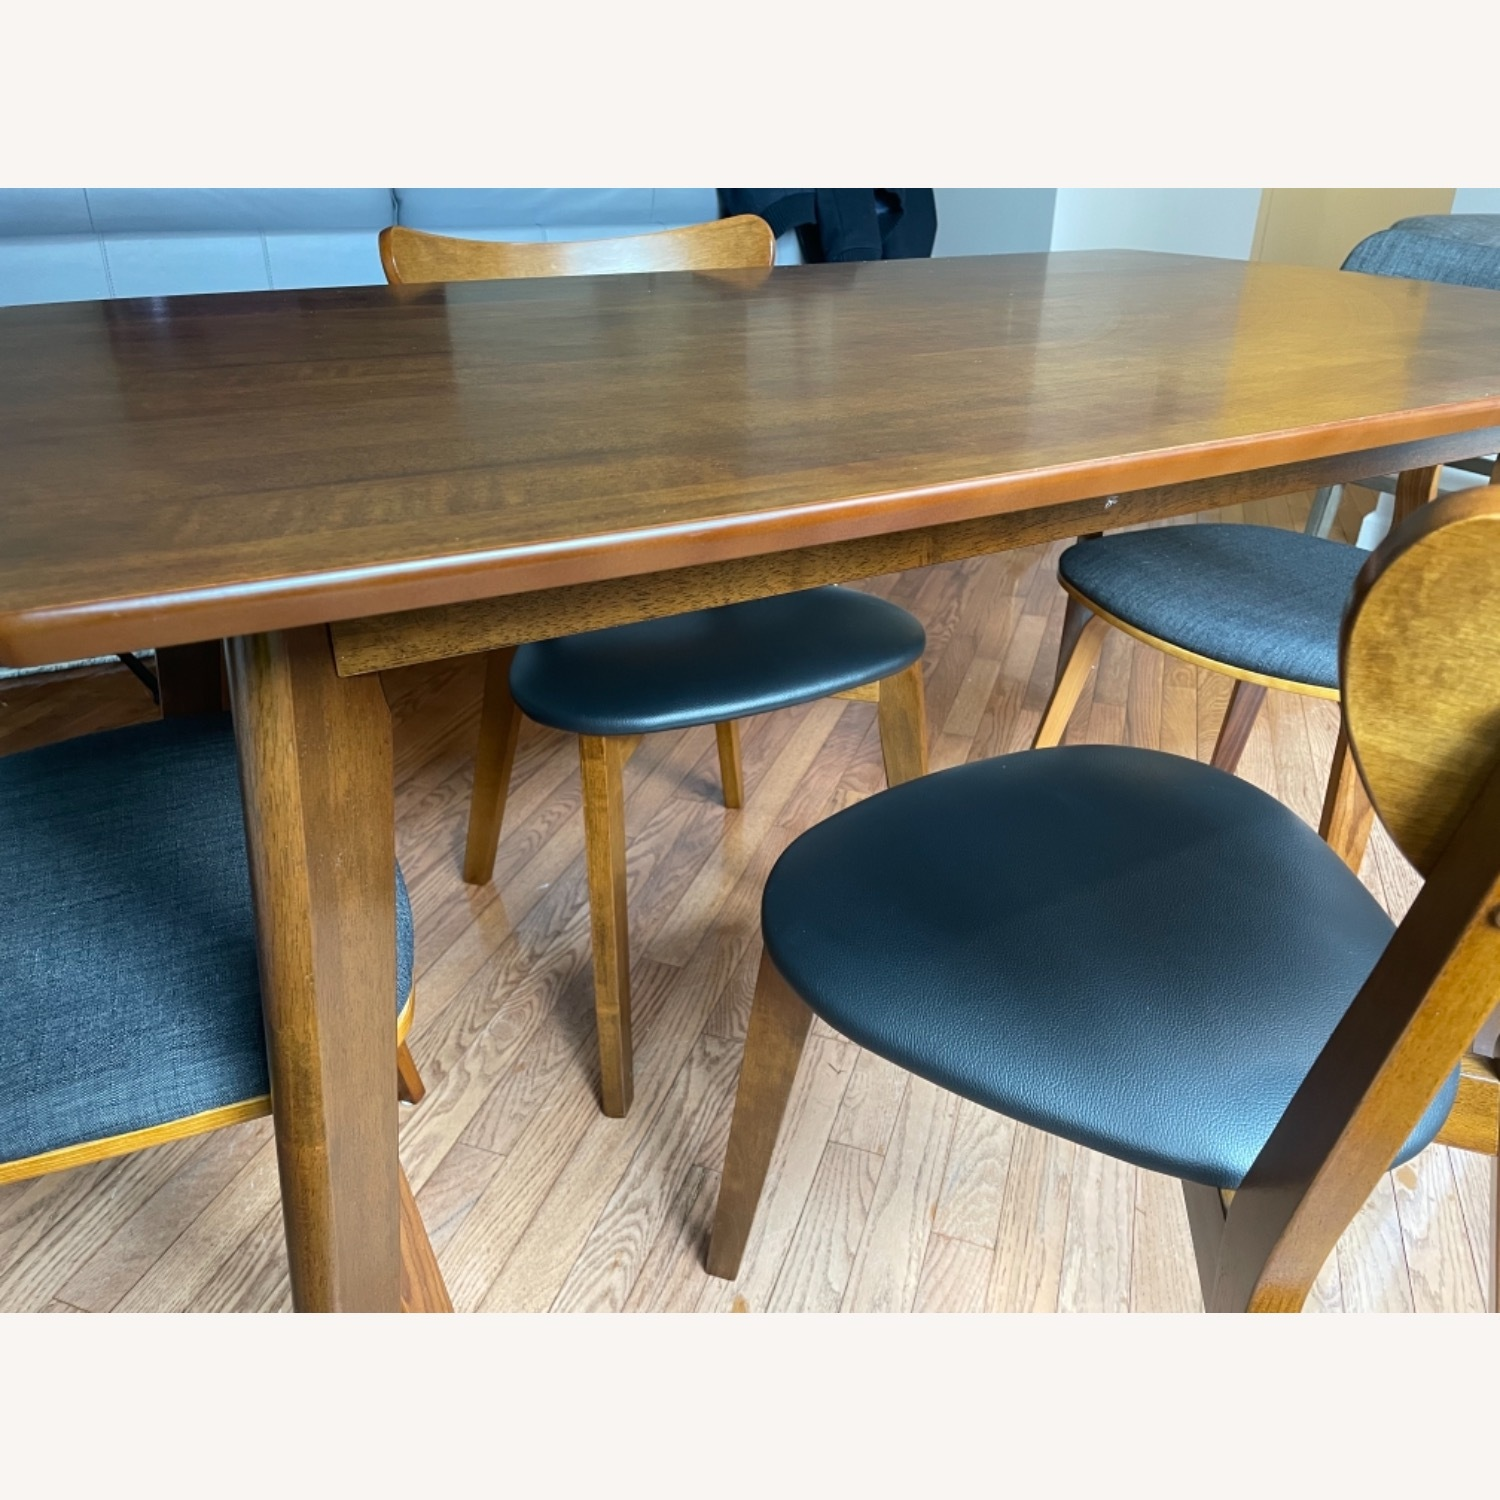 Dining Table Set & Chairs in Walnut Finish - image-2